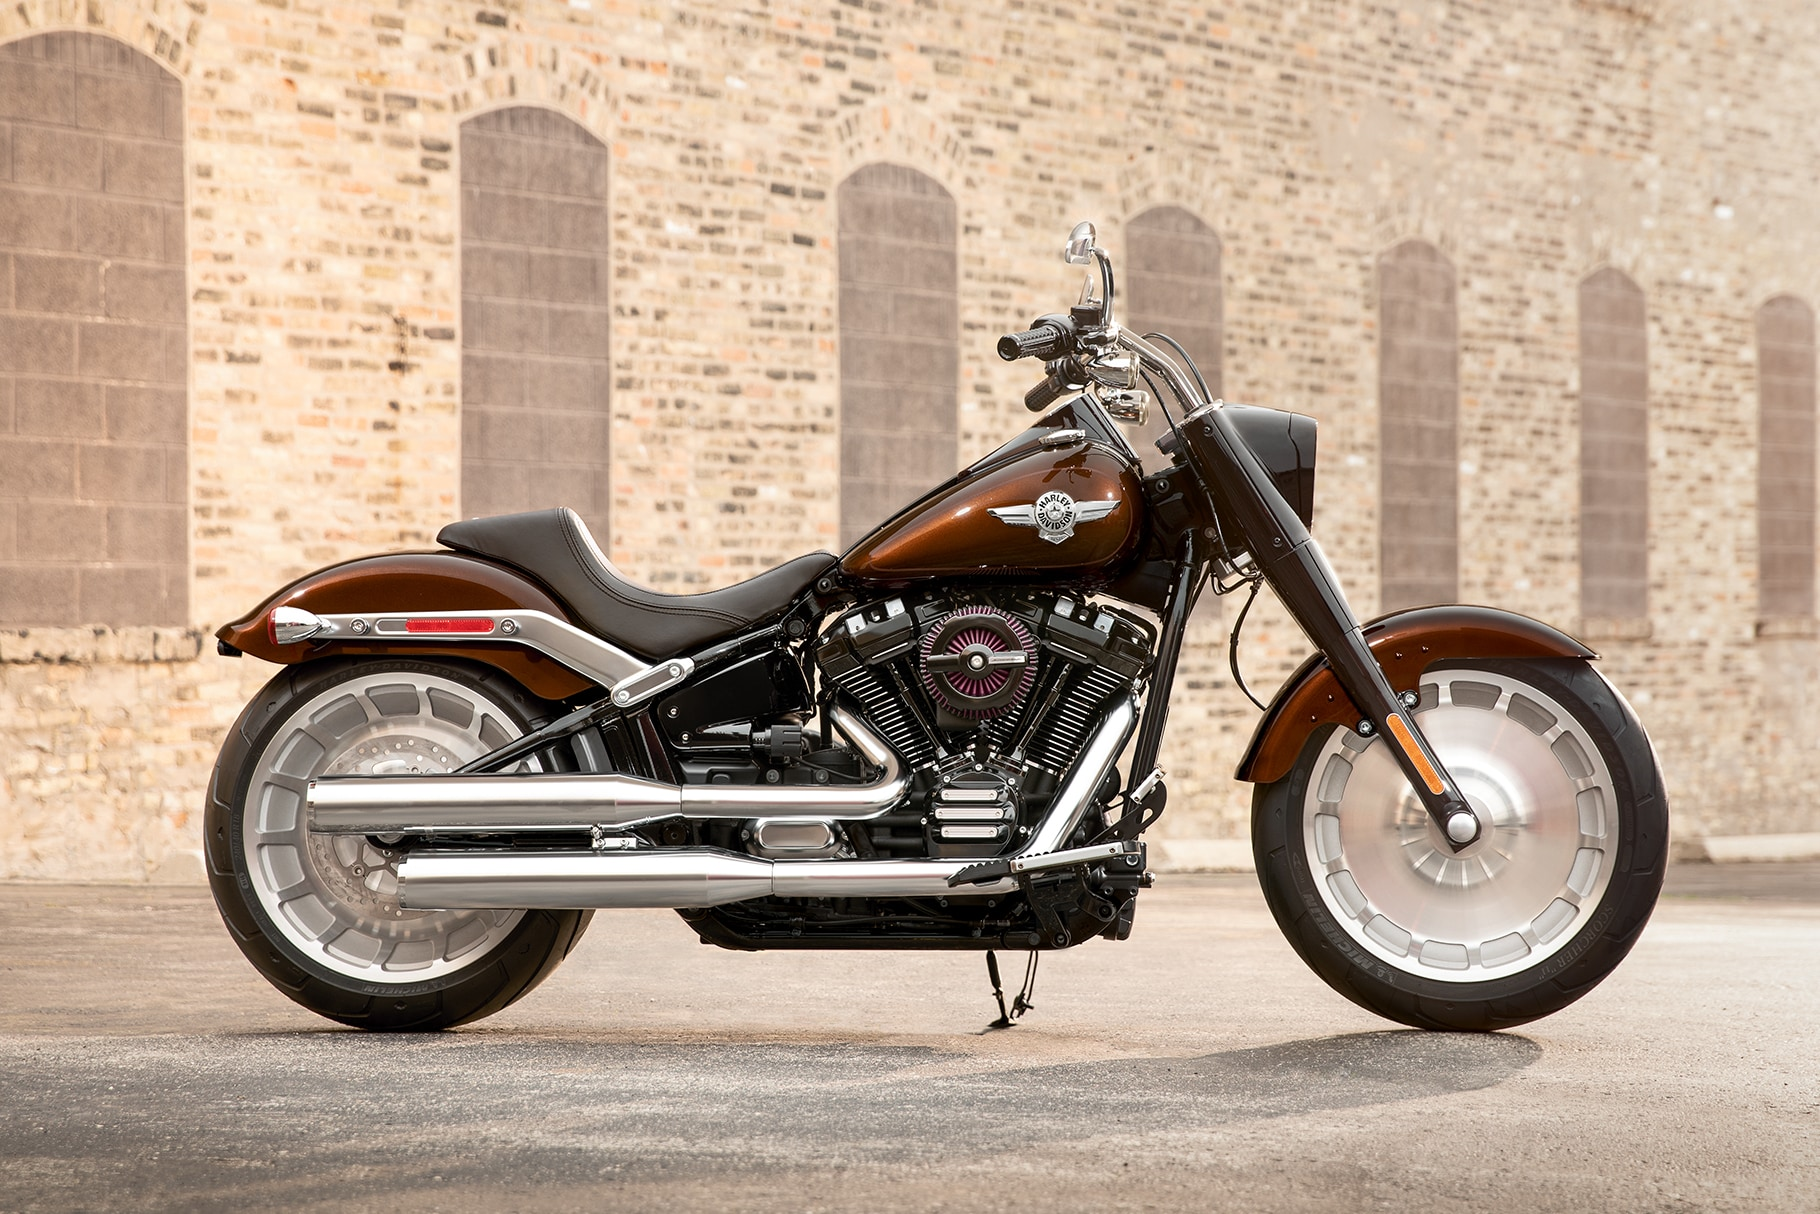 2019 Softail H-D Motorcycle Parked on a Street